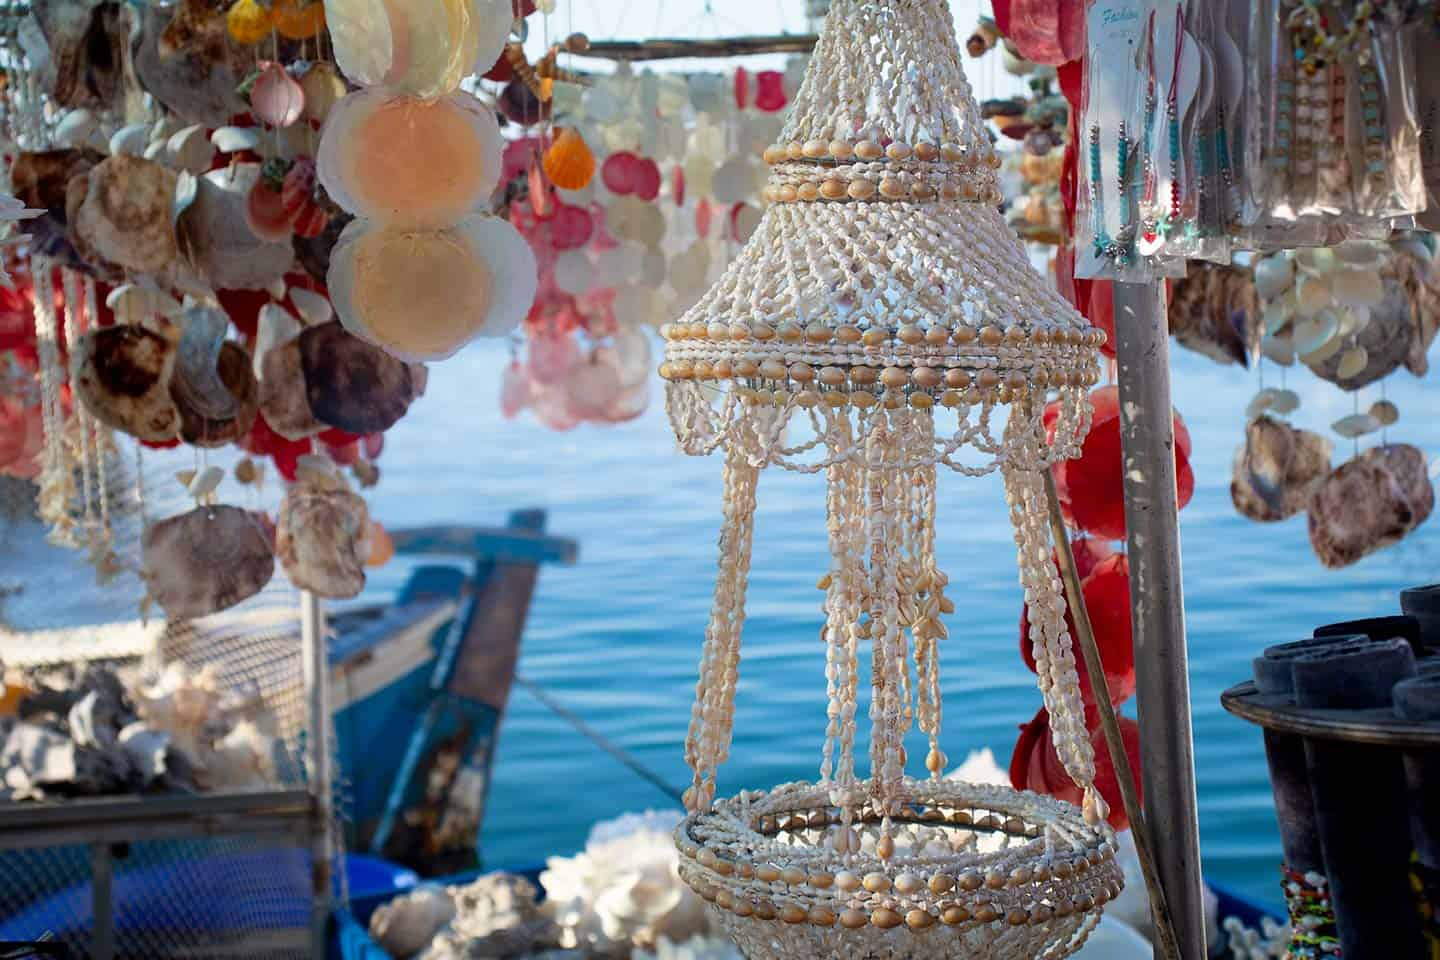 Image of souvenirs made from sea shells in Chania harbour Crete Greece